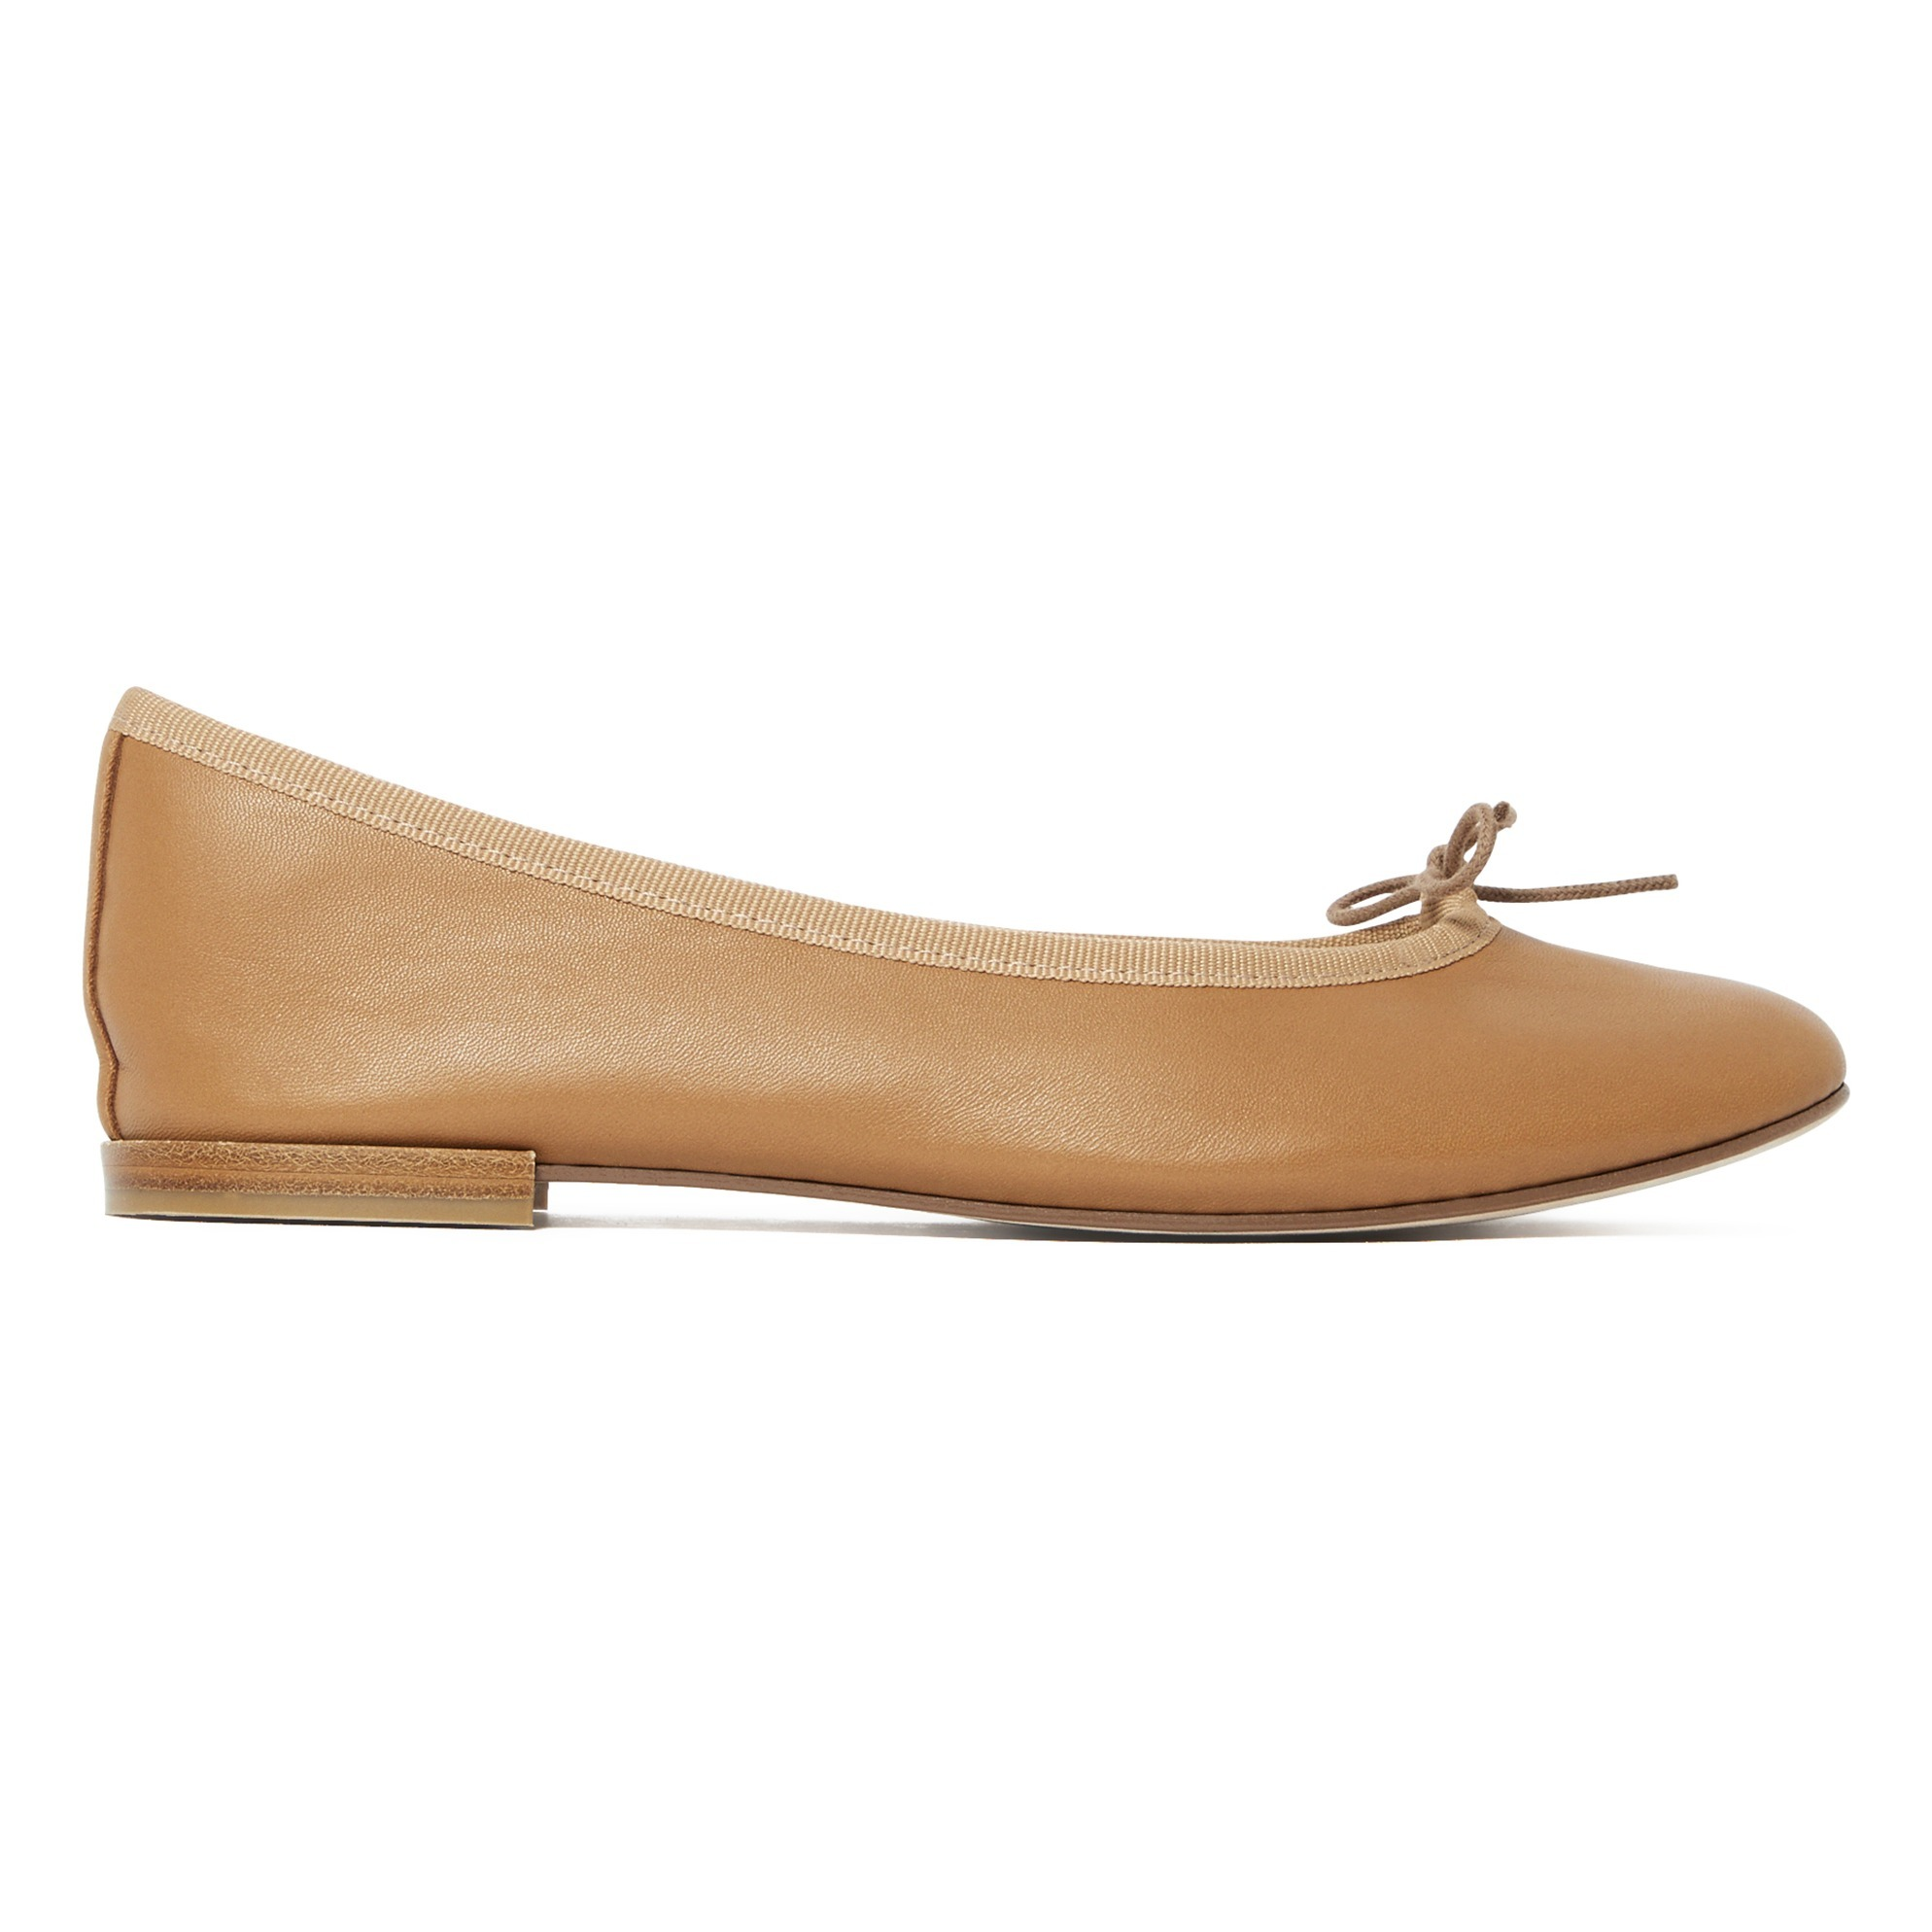 523b1ba230322 Cendrillon Ballet Flats Taupe brown Repetto Shoes Adult